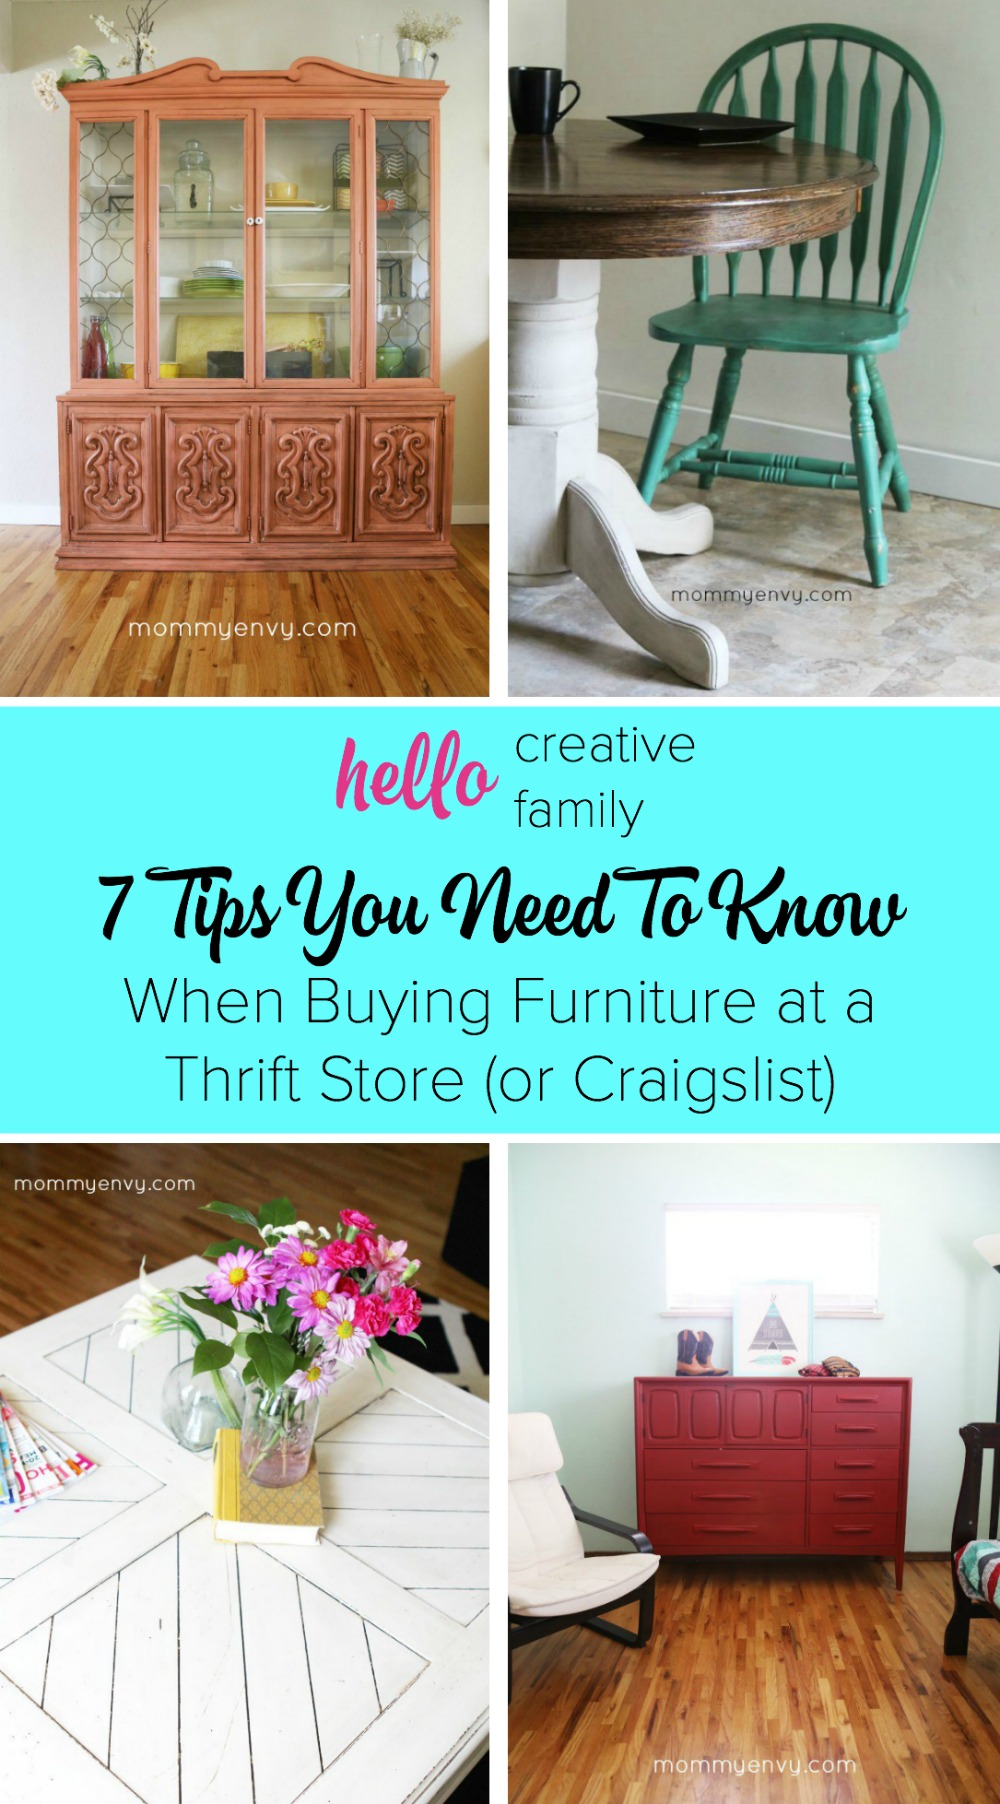 Buying Furniture At A Thrift Store Or Craigslist 7 Tips You Need To Know Hello Creative Family